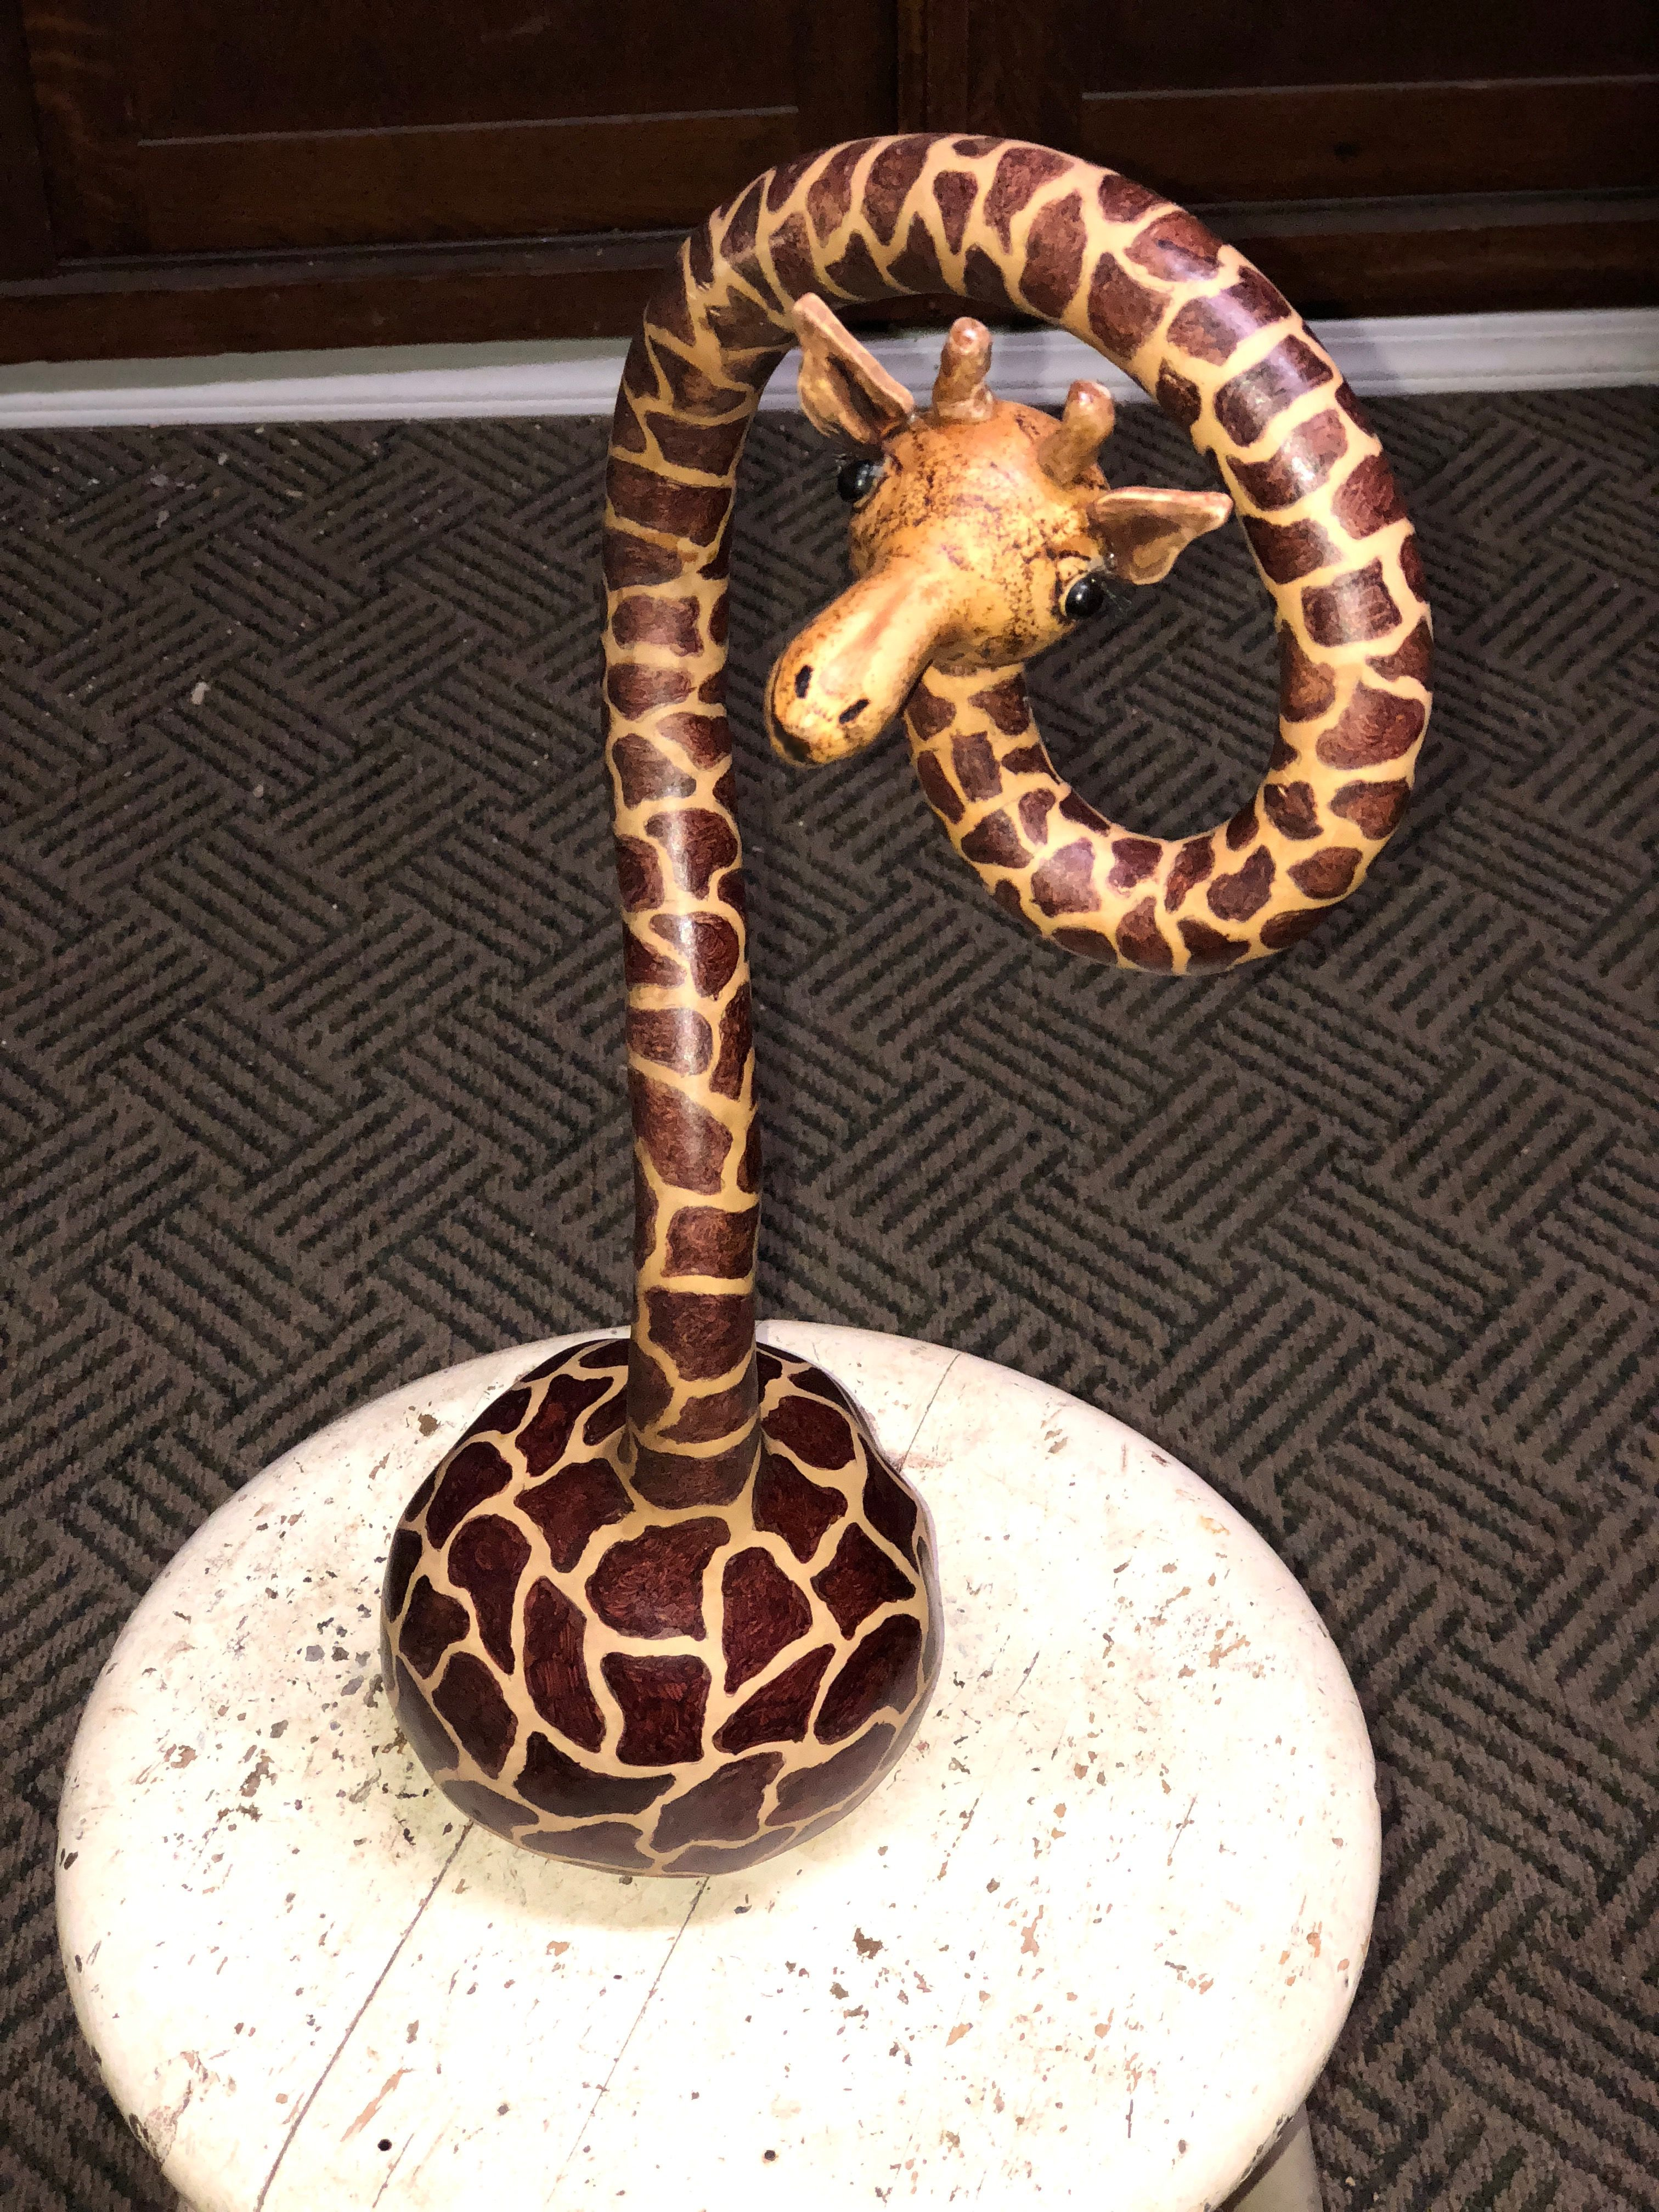 Pin by Susan Conard on My gourds Gourds, Snake, Animals